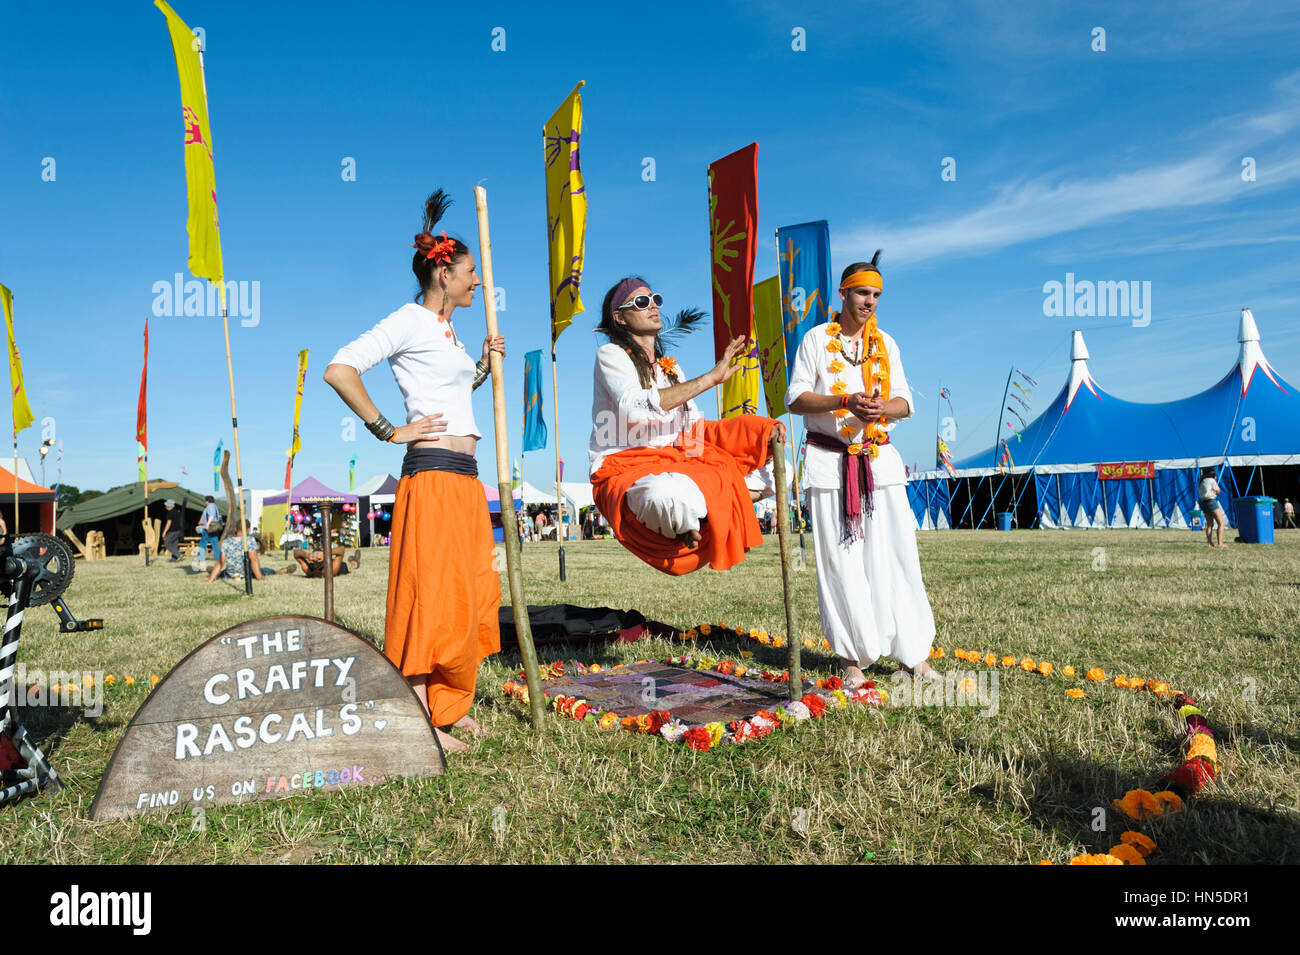 The Crafty Rascals Theatre company perform the floating man illusion at the Larmer tree festival, Dorset, England, - Stock Image